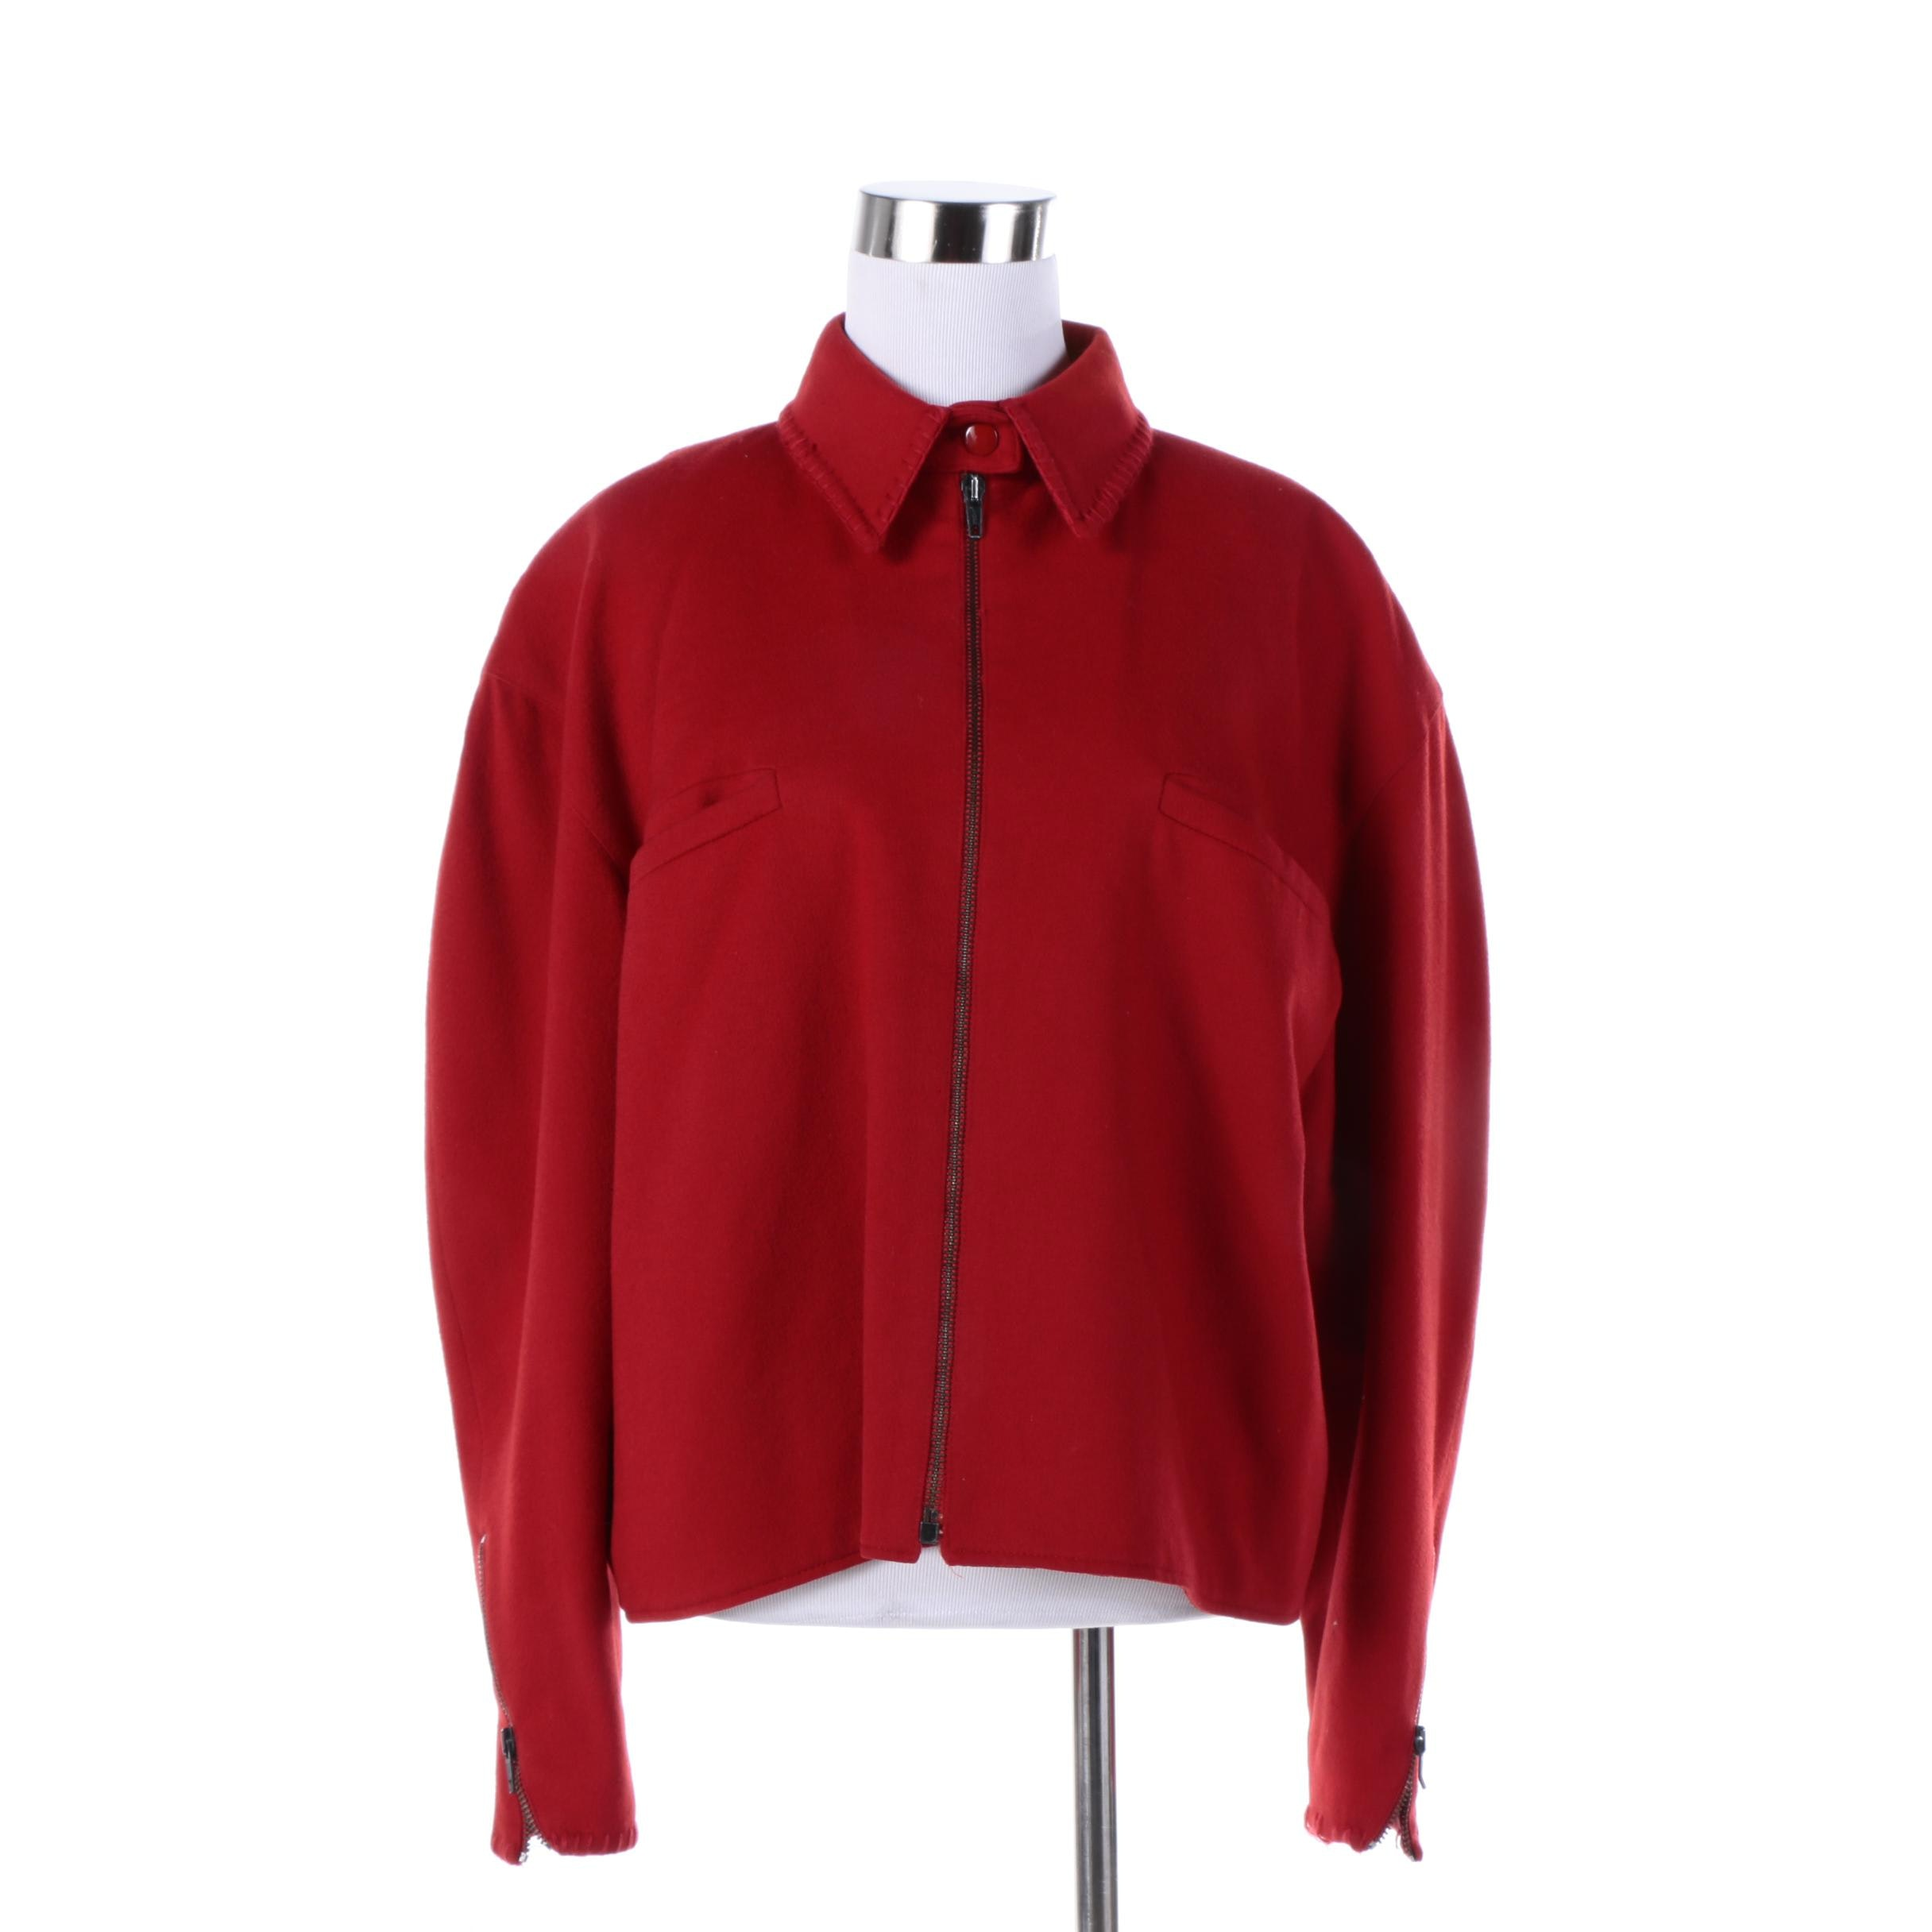 Women's Claude Montana Red Wool Zipper-Front Jacket